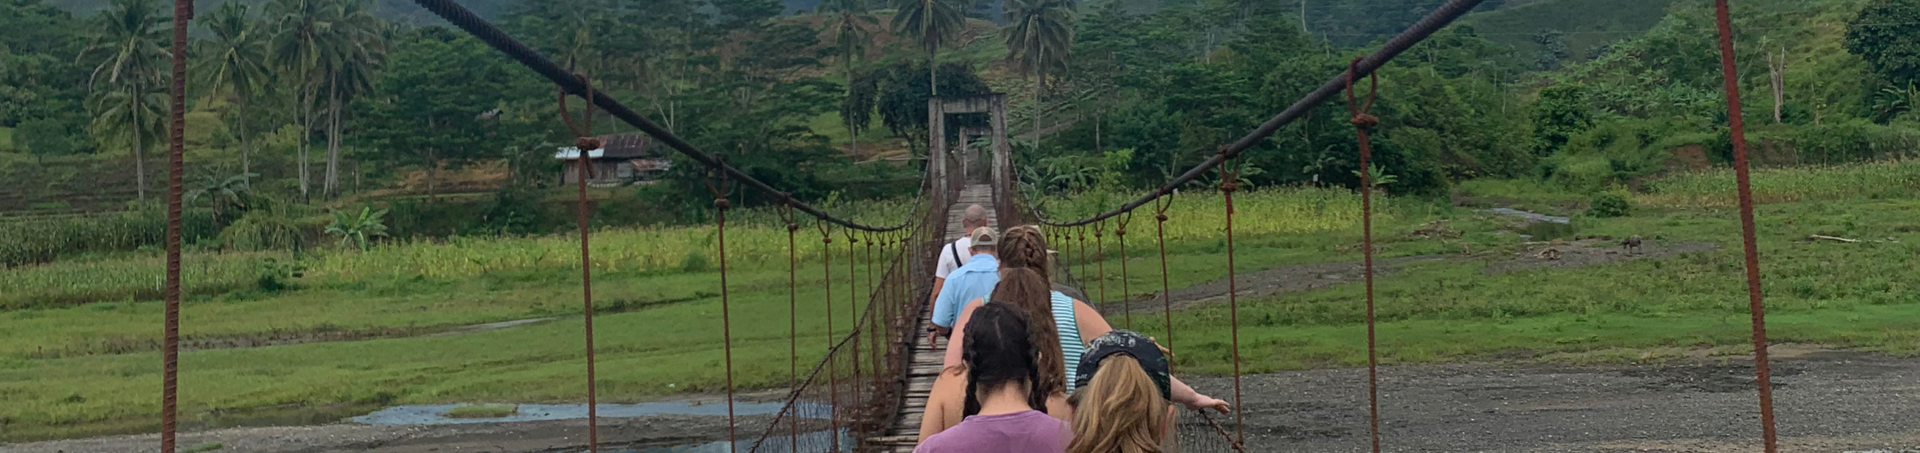 Encounter participants crossing a rope bridge